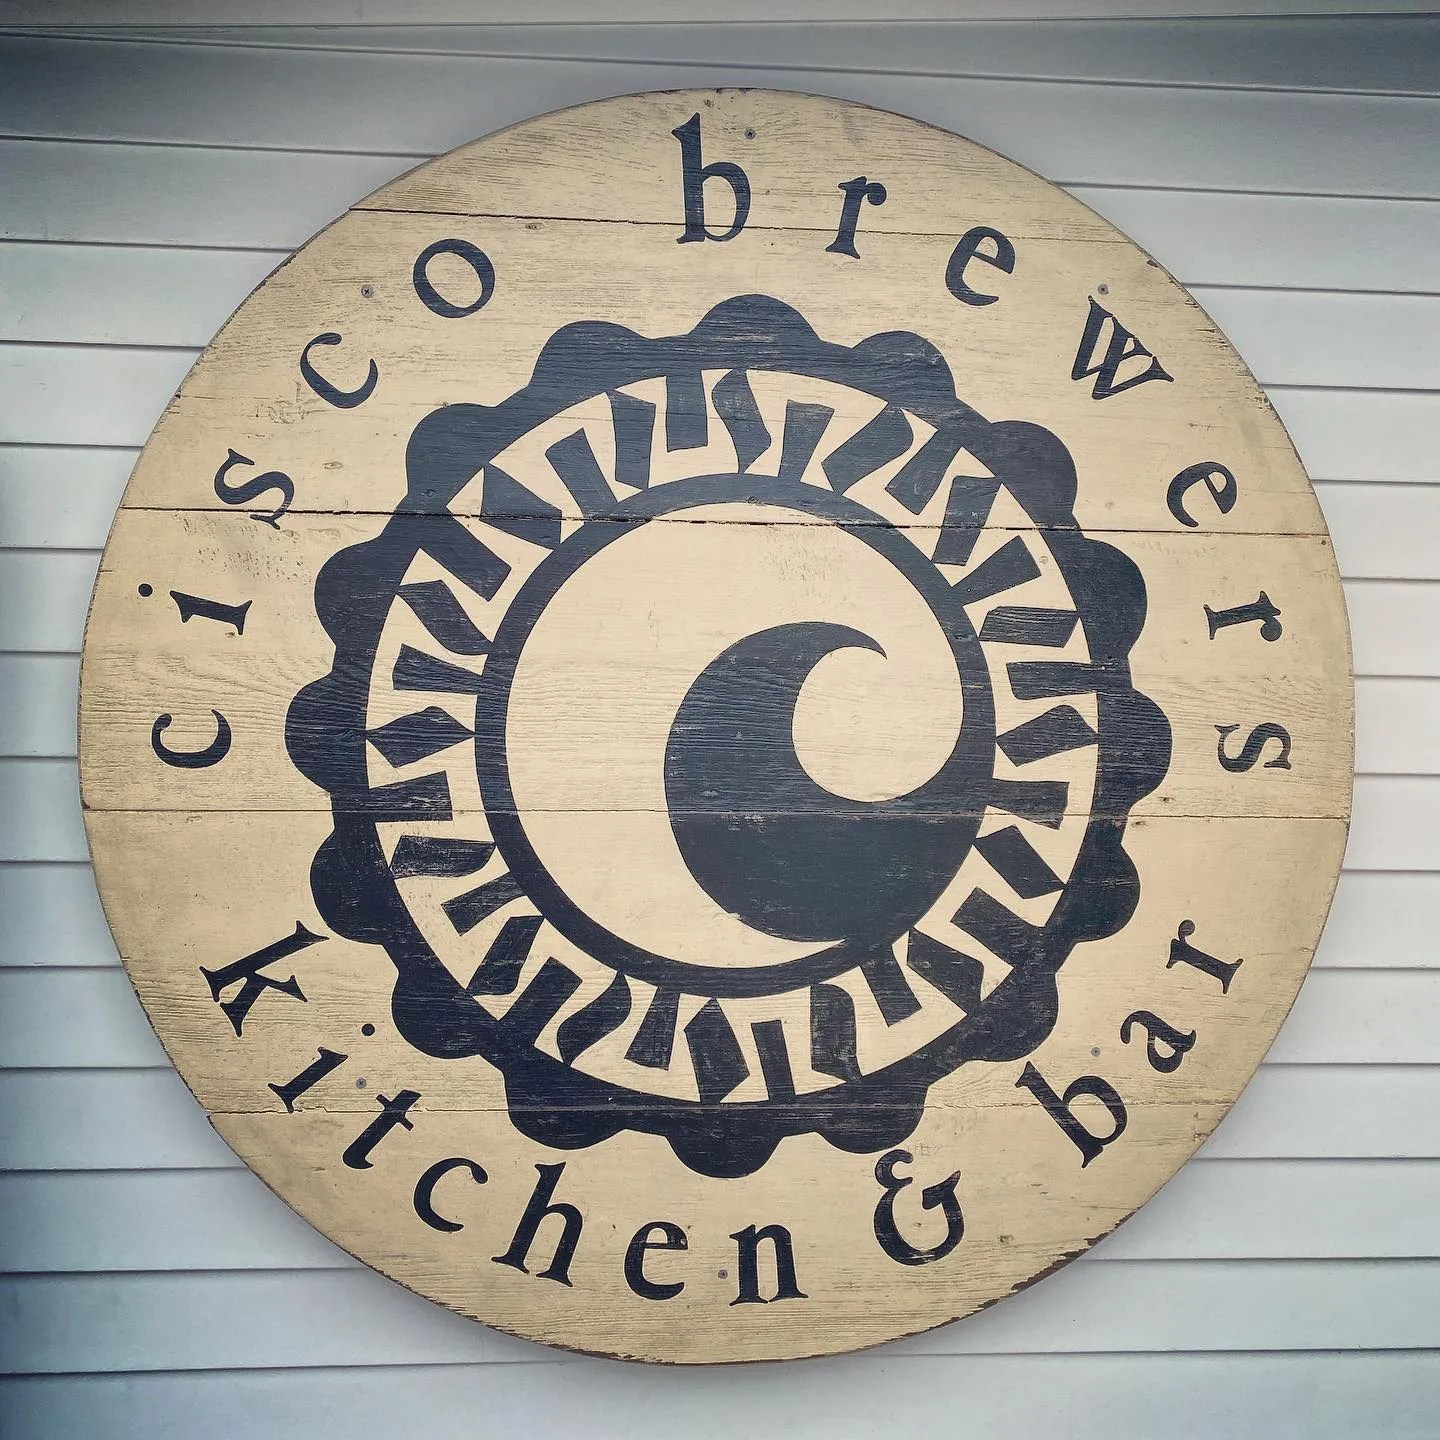 Cisco Brewers Kitchen & Bar is the new entertainment complex to open in New Bedford.